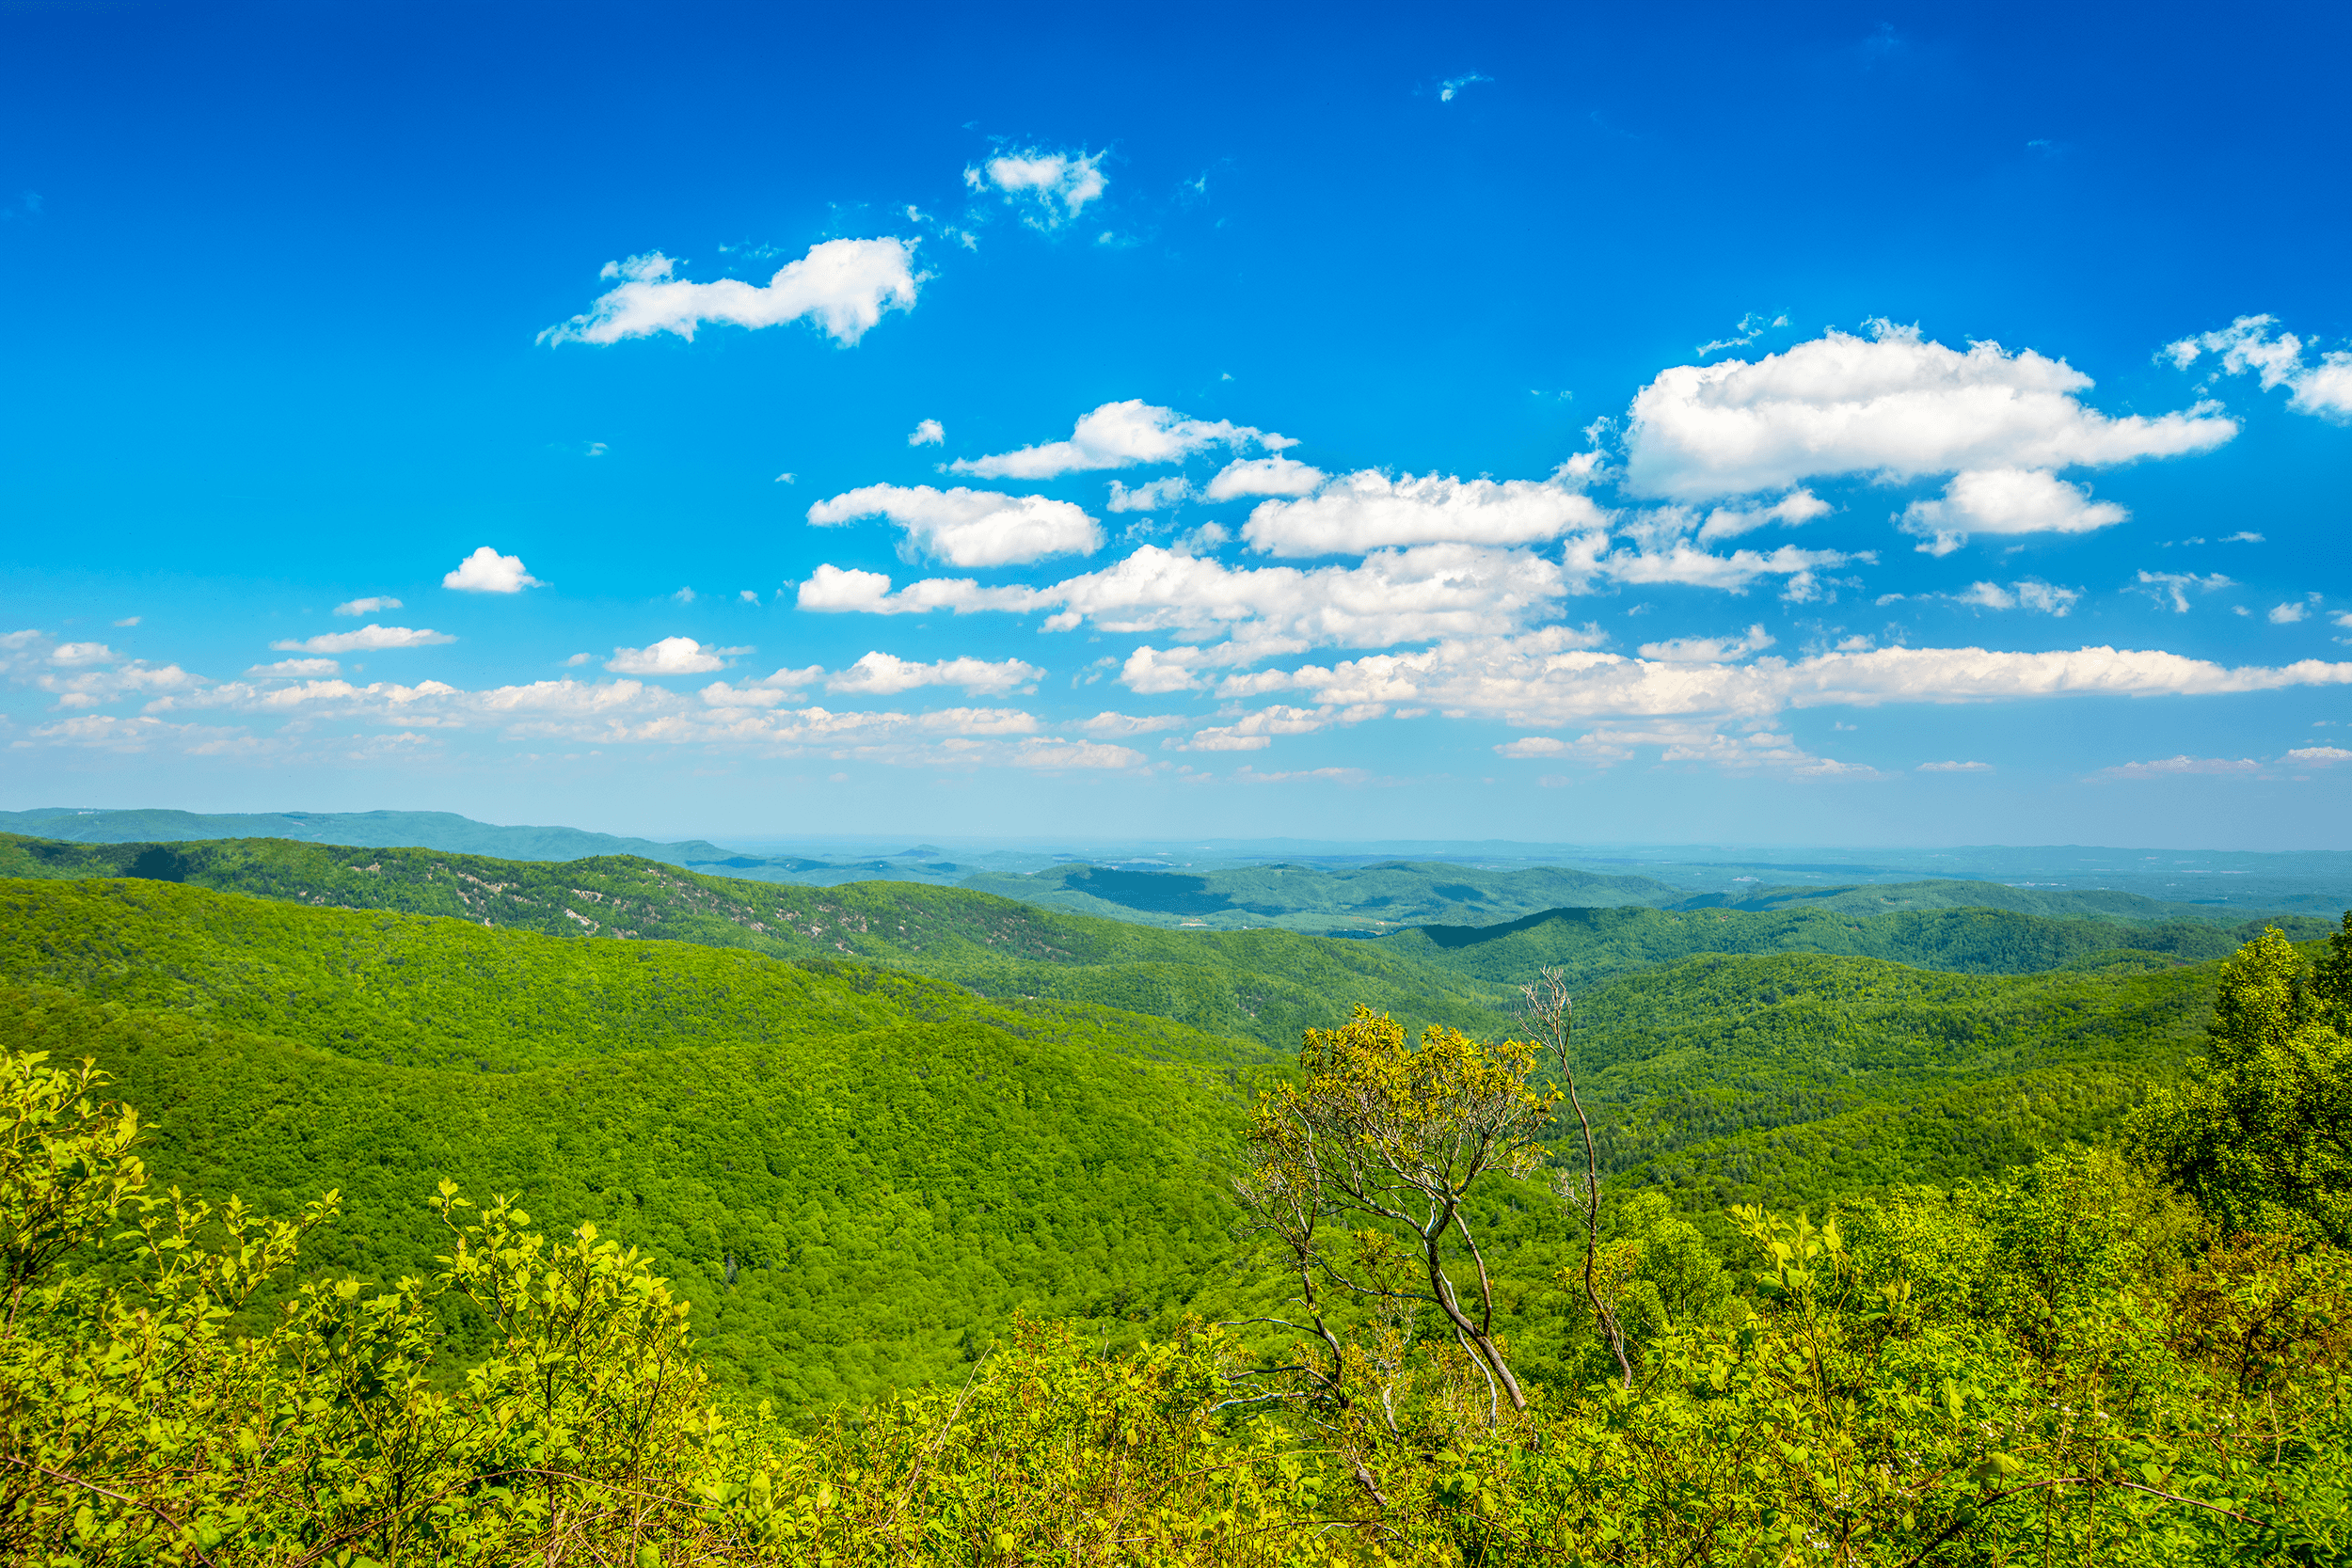 View Bluff Mountain  at Milepost 243.4 on the Blue Ridge Parkway offers beautiful vistas overlooking Doughton Park. It also provides hikers access to the easy 7.5-mile (12 km)  Bluff Mountain Trail , which reaches the Brinegar Cabin after 4.7 miles (7.6 km).